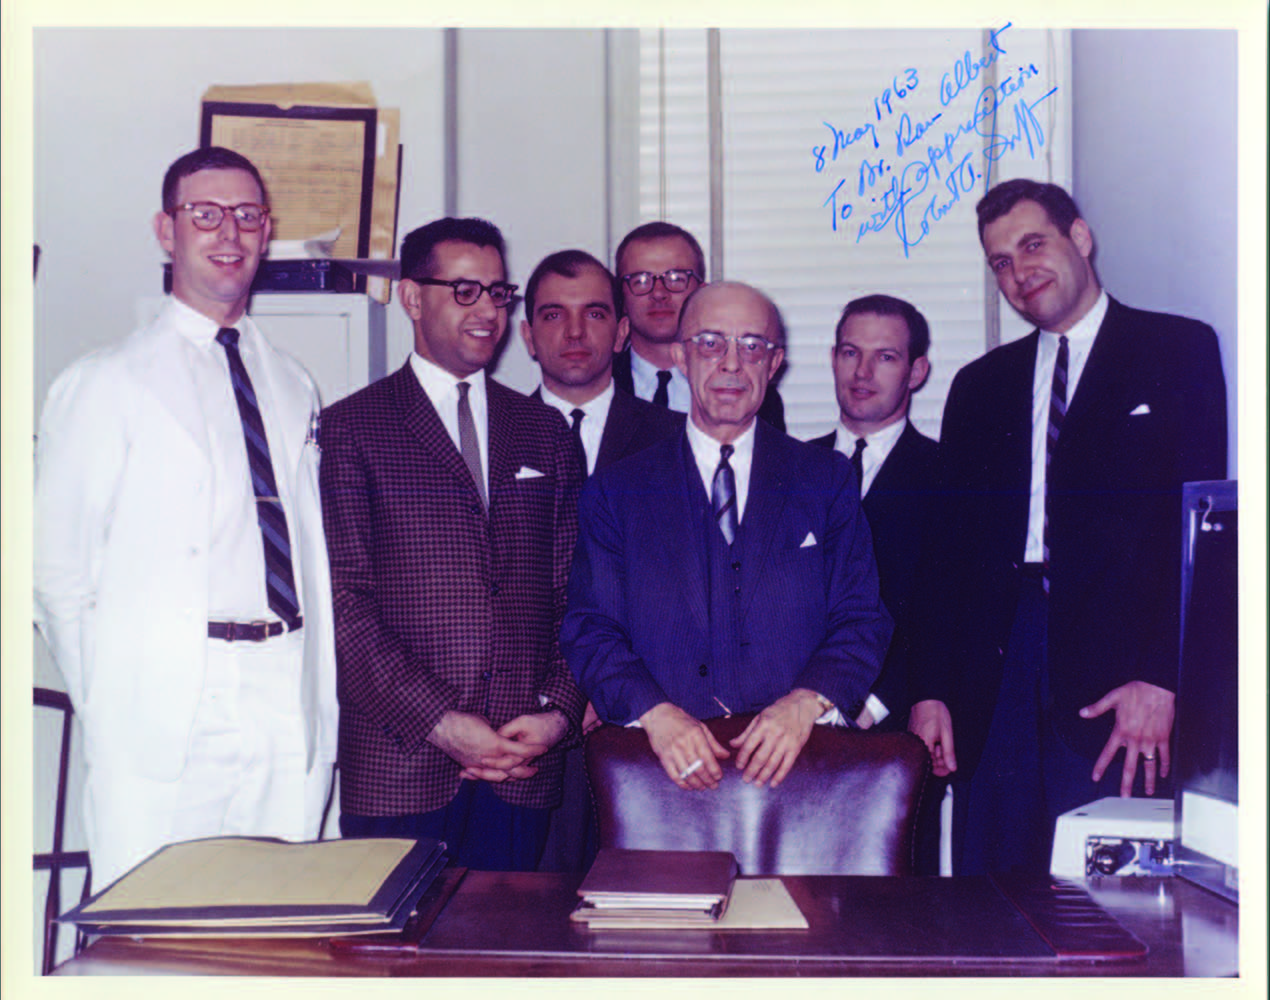 Dr. Albert, on left, in 1962 during the neurosurgery rotation of his internship, with classmates and Professor Robert A. Goff (center).